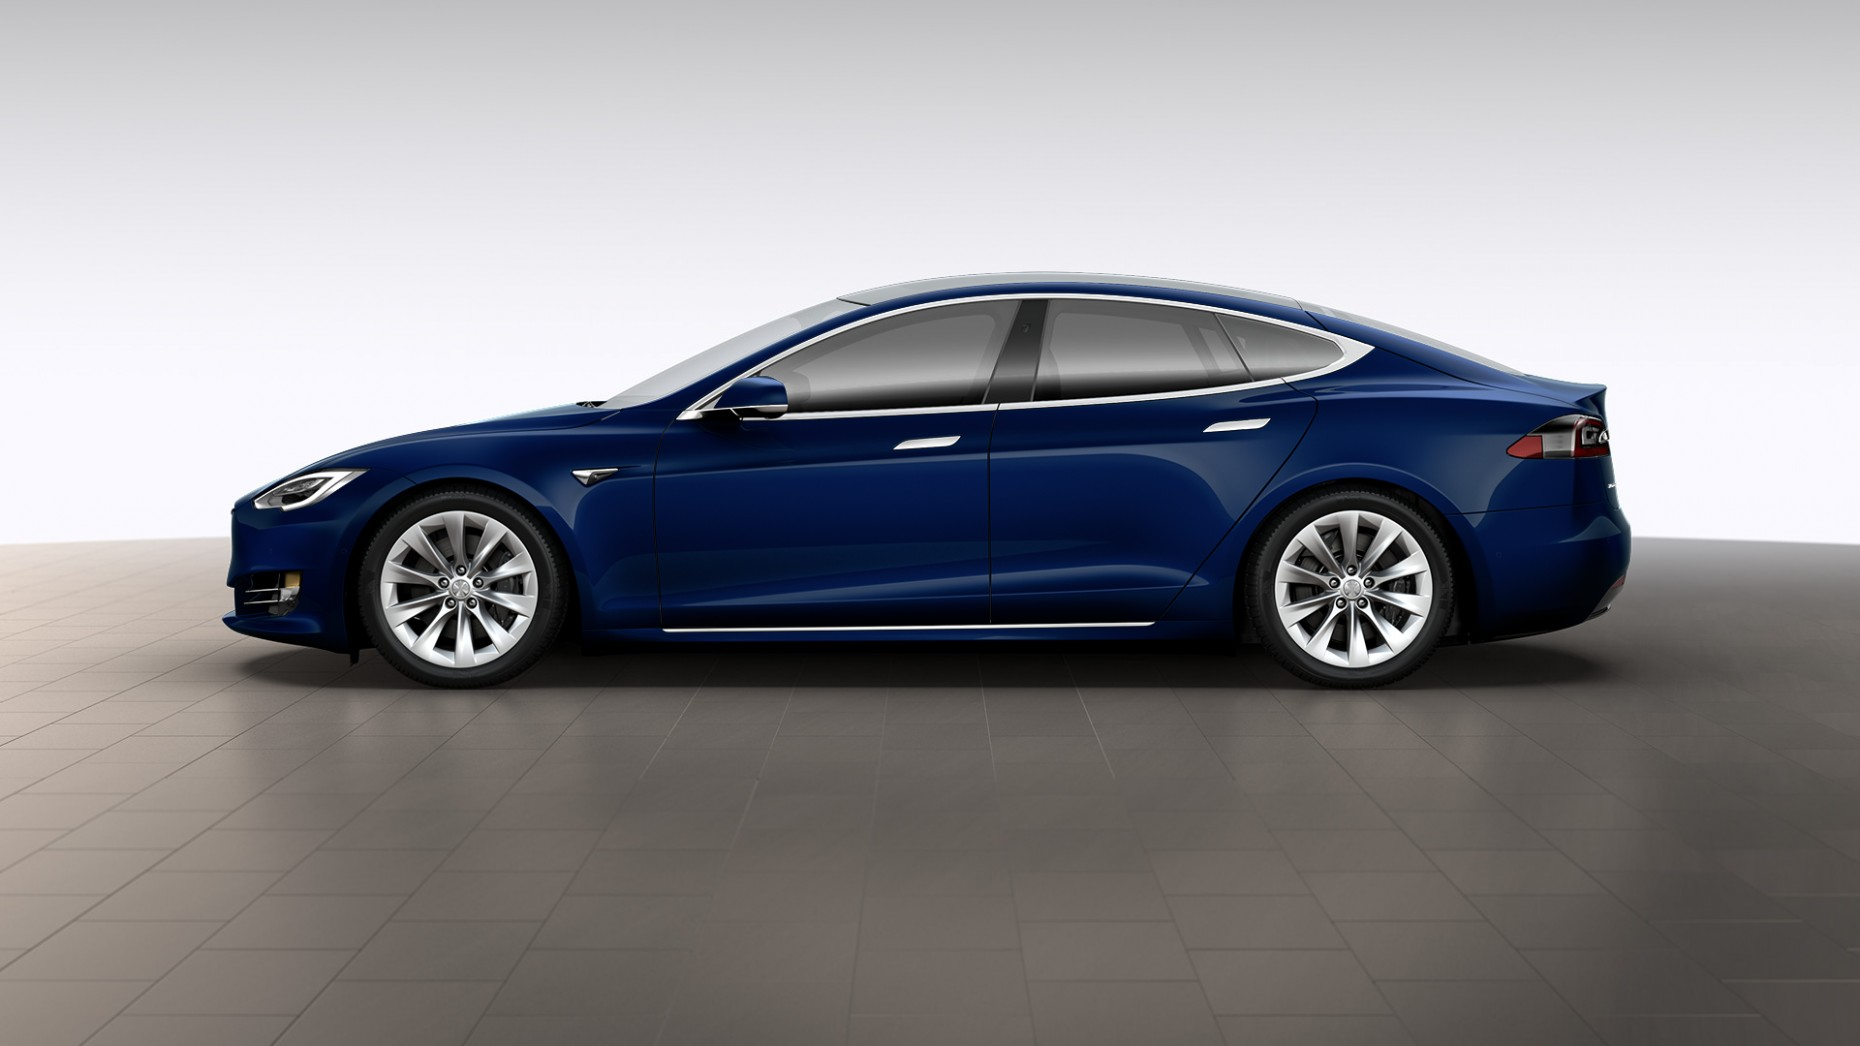 2017 tesla model s 75 deep blue metallic paint vin 5yjsa1e15hf228411 for sale in usa tesla. Black Bedroom Furniture Sets. Home Design Ideas